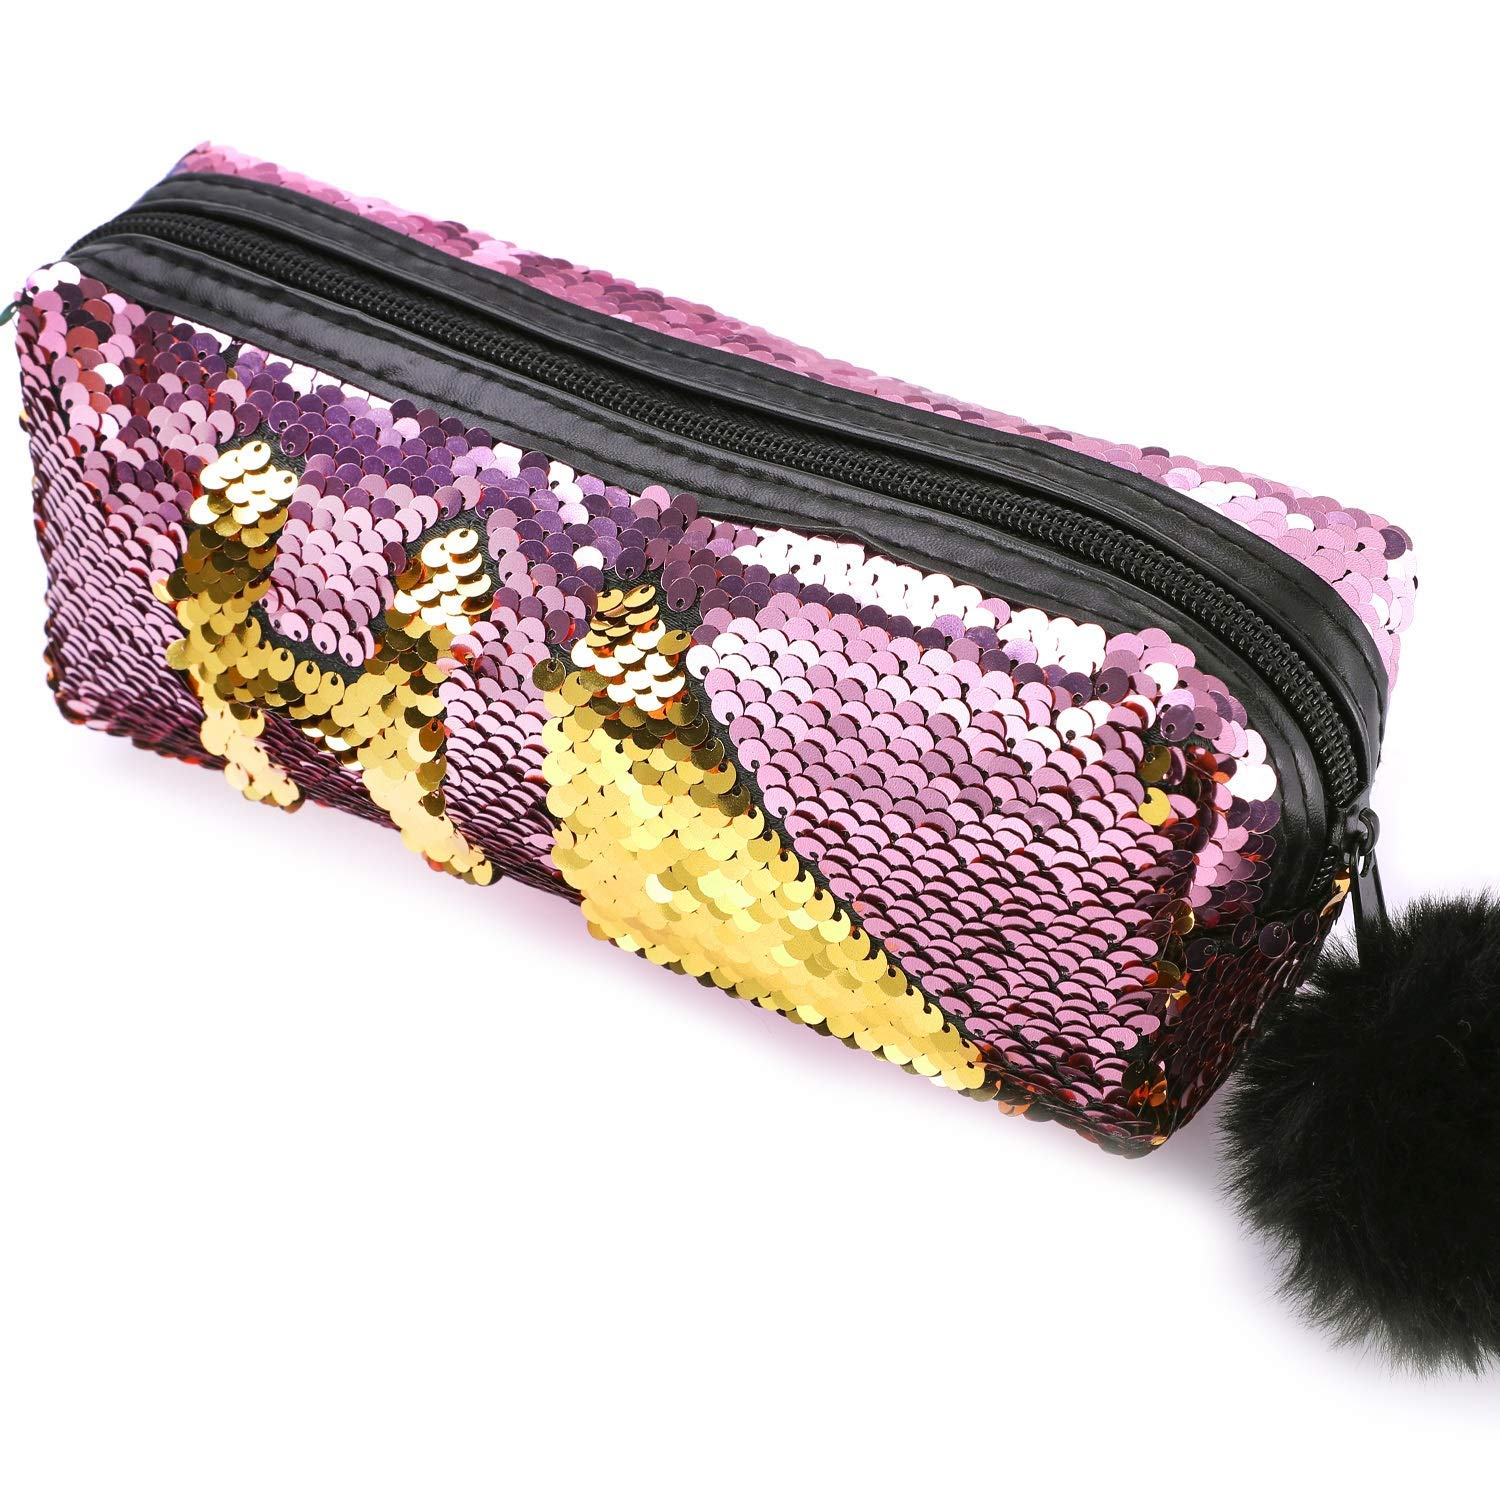 Glitter Cosmetic Bag Mermaid Spiral Reversible Sequins Portable Double Color Students Pencil Case for Girls Women Handbag Purse Make Up Pouch with Pompon Zip Closure(Gold+Pink)